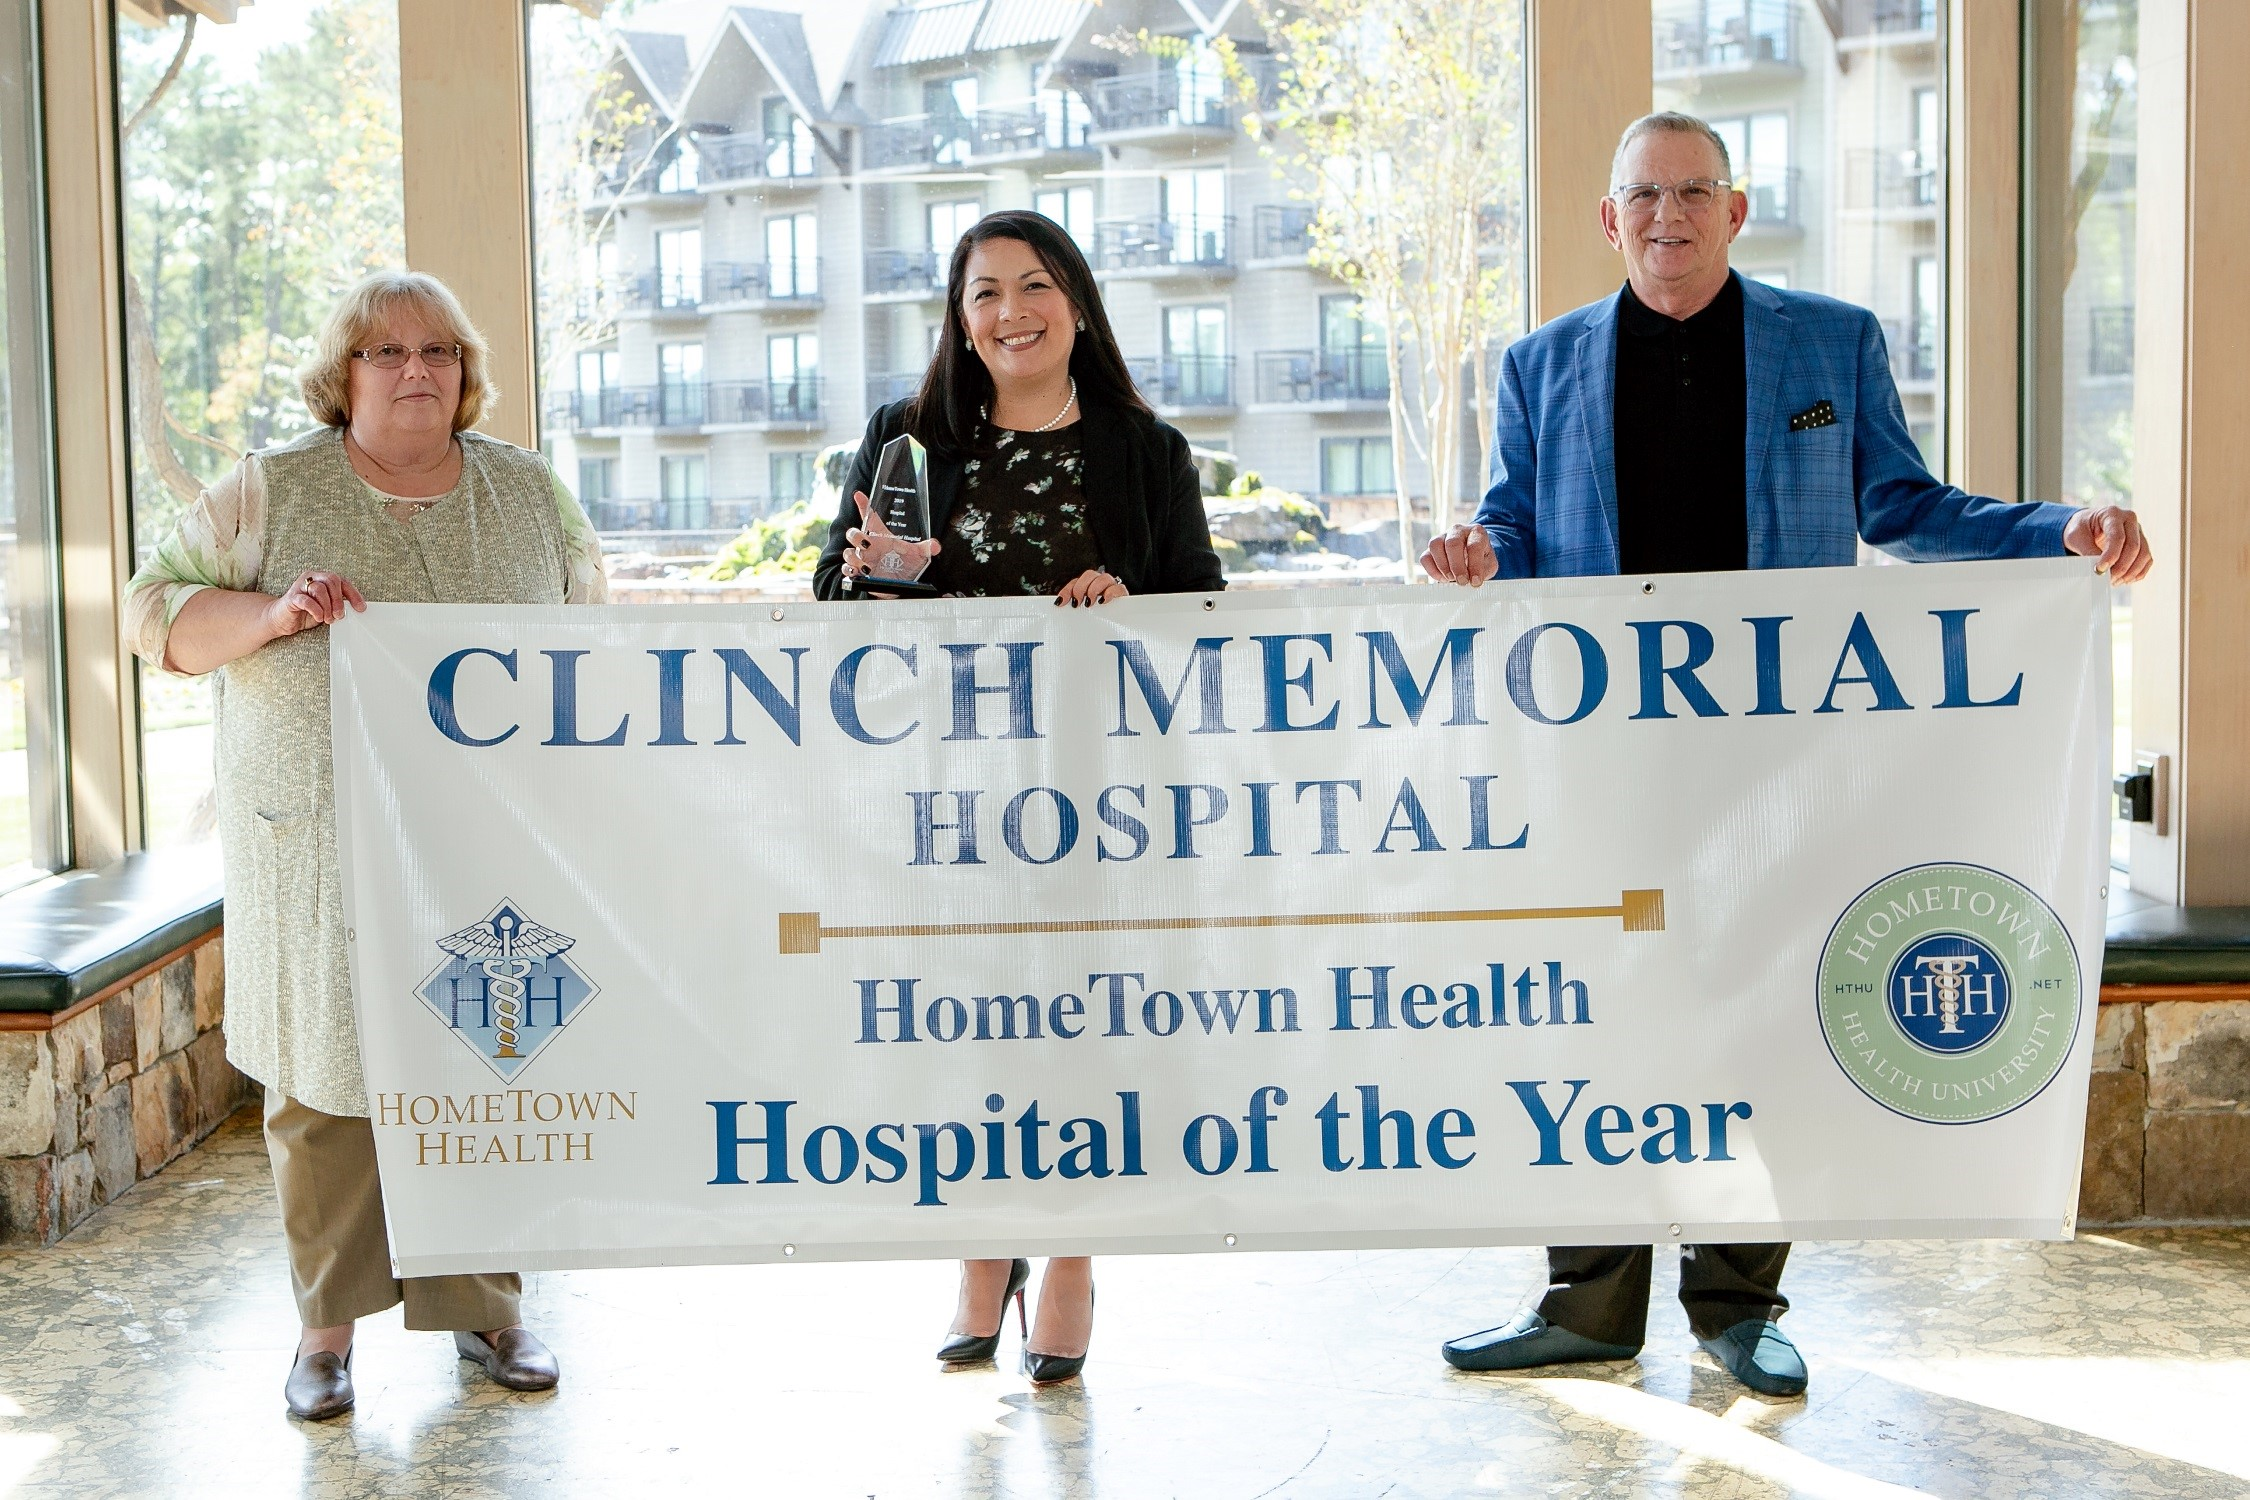 Clinch Memorial Hospital executives receiving HomeTown Health Hospital of the Year Award.  From left: Teressia Shook, CFO; Angela Ammons, CEO; Preston King, Compliance Officer.